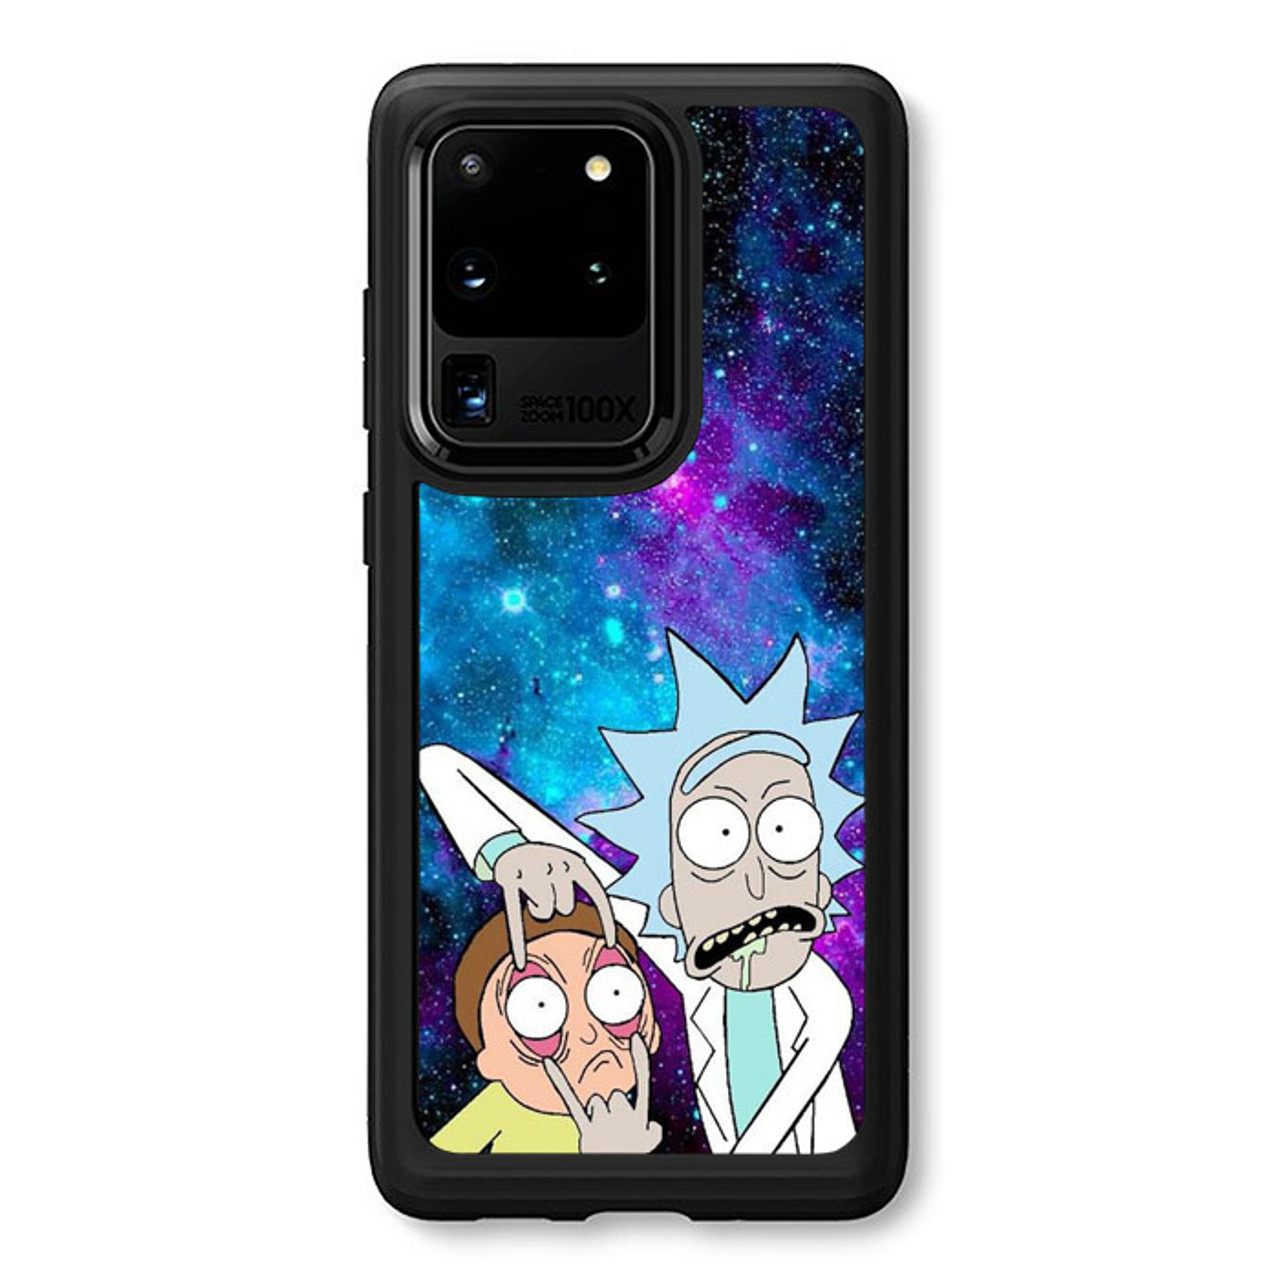 Rick And Morty Wallpaper Q0220 Samsung Galaxy S20 Ultra 5g Case Flazzy Store